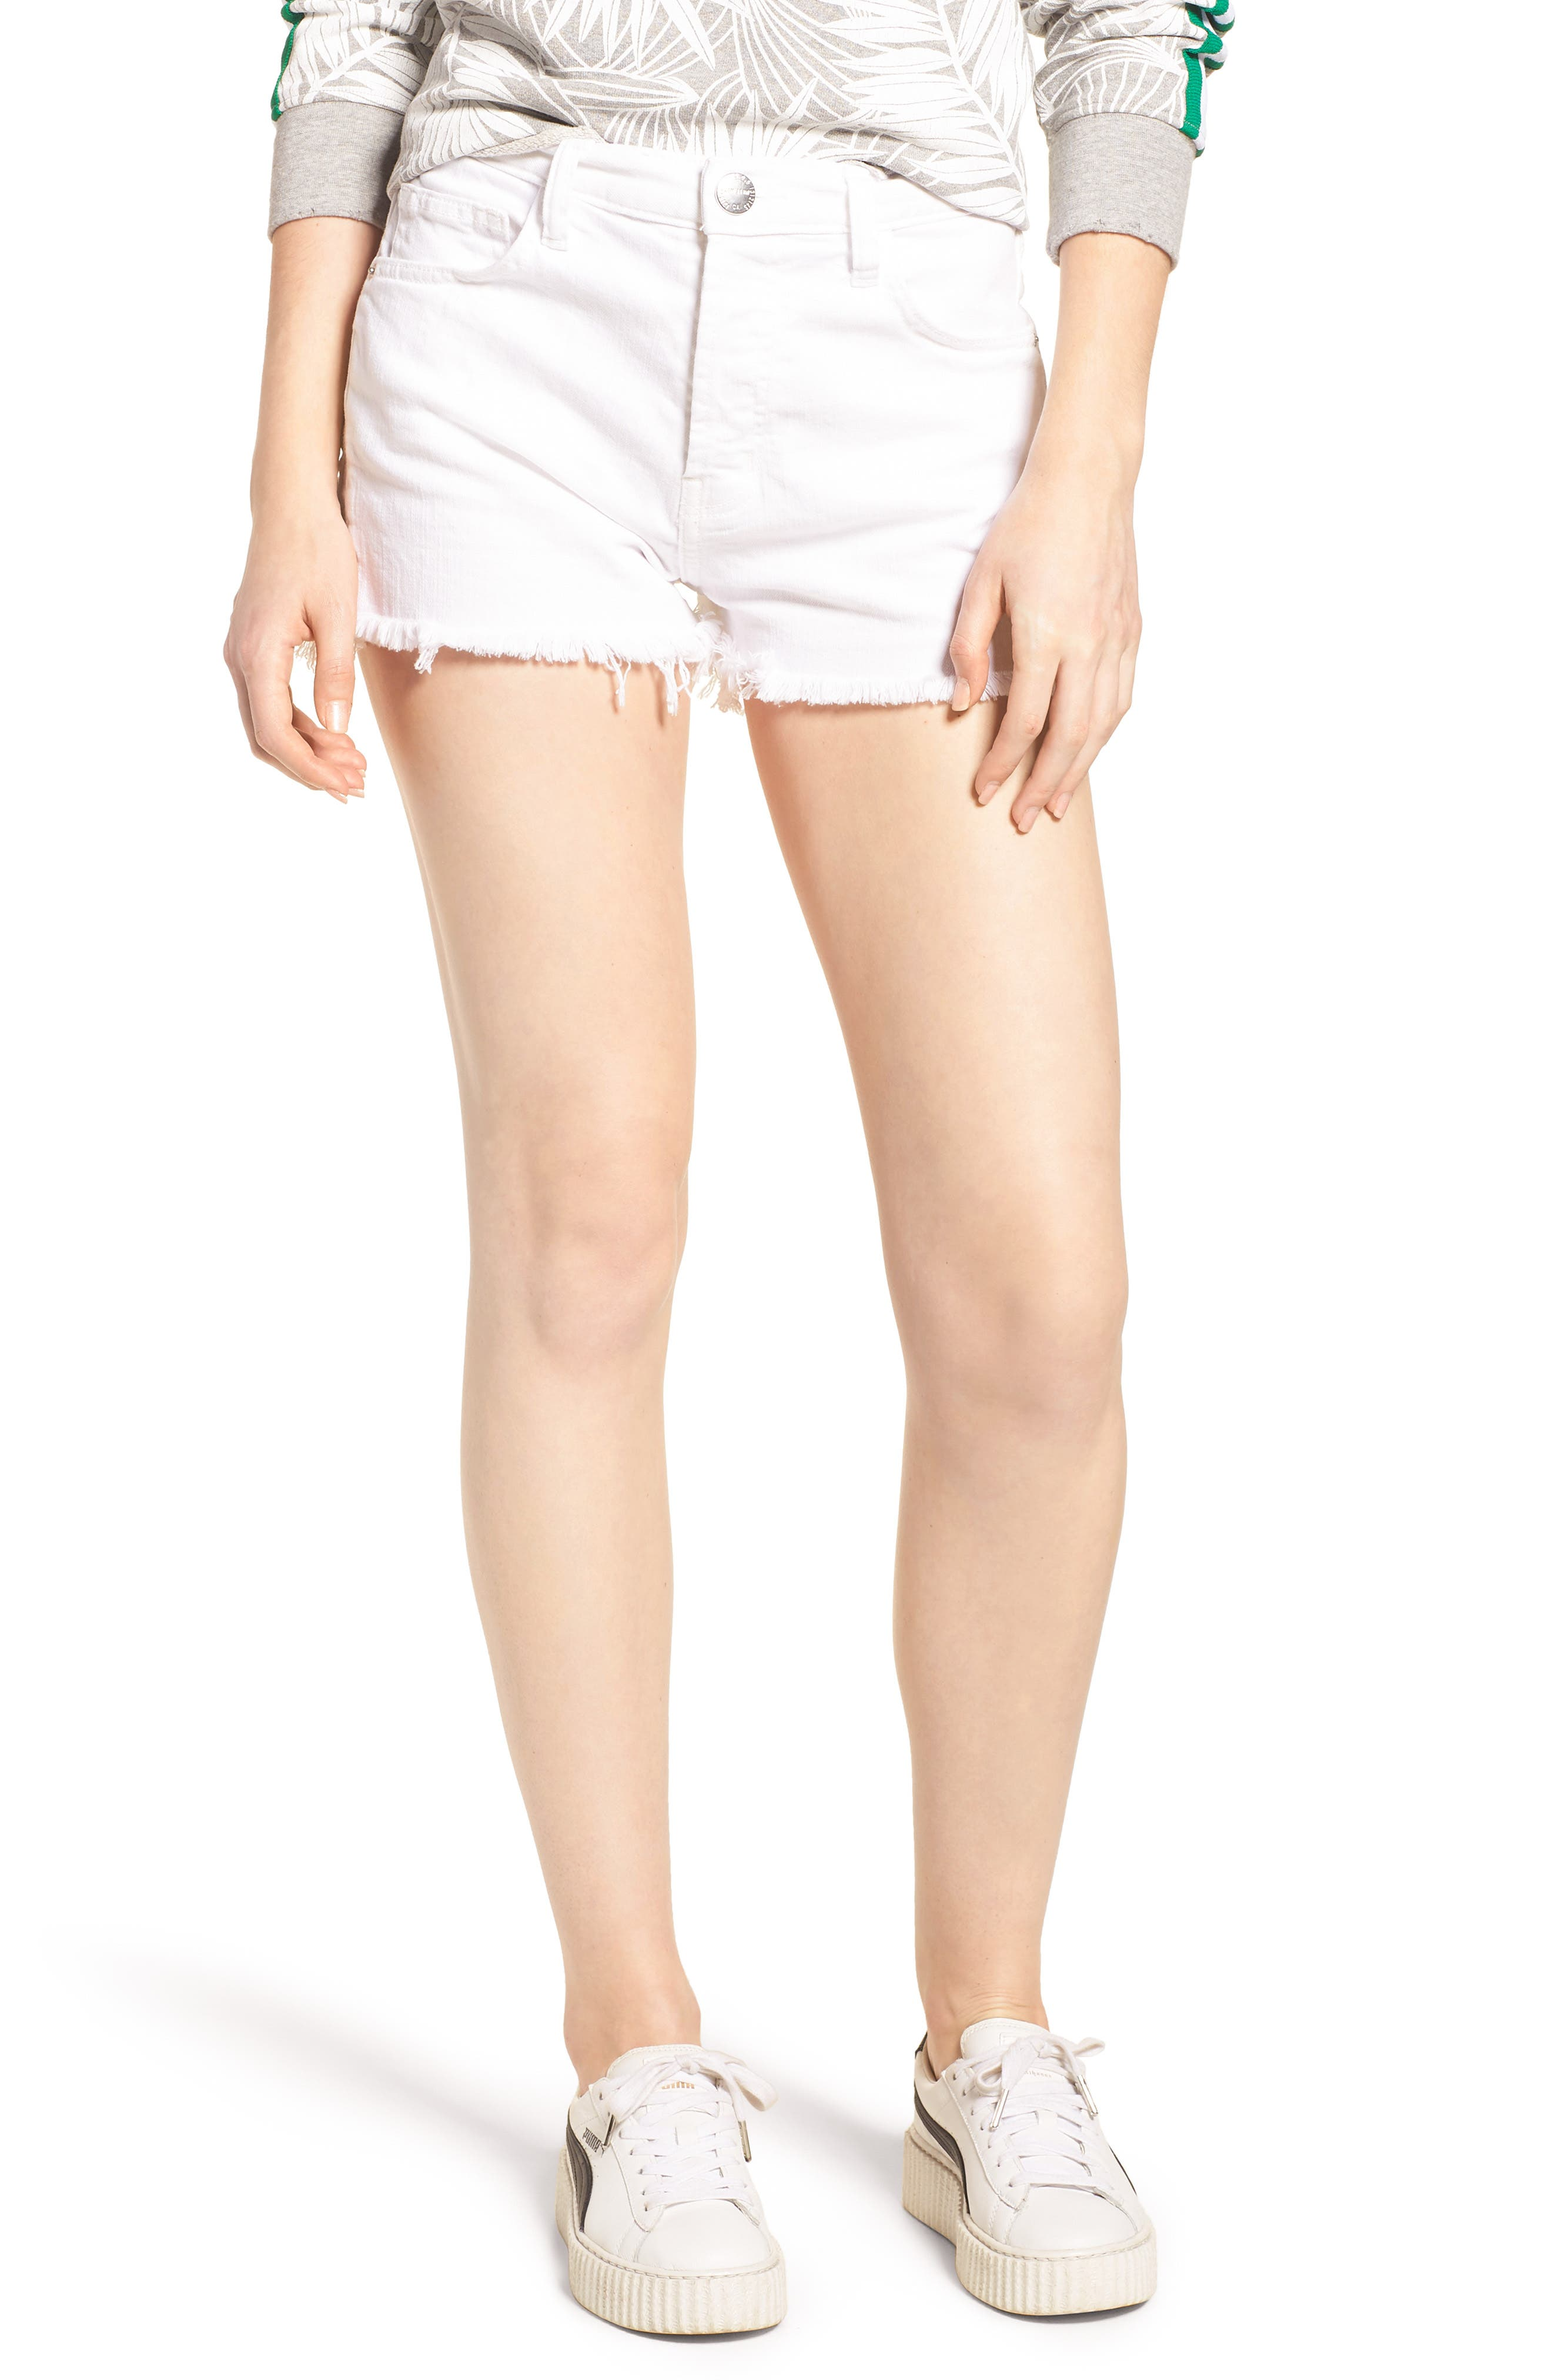 The Ultra High Waist Cutoff Denim Shorts,                         Main,                         color, Sugar W/ Mishap Hem